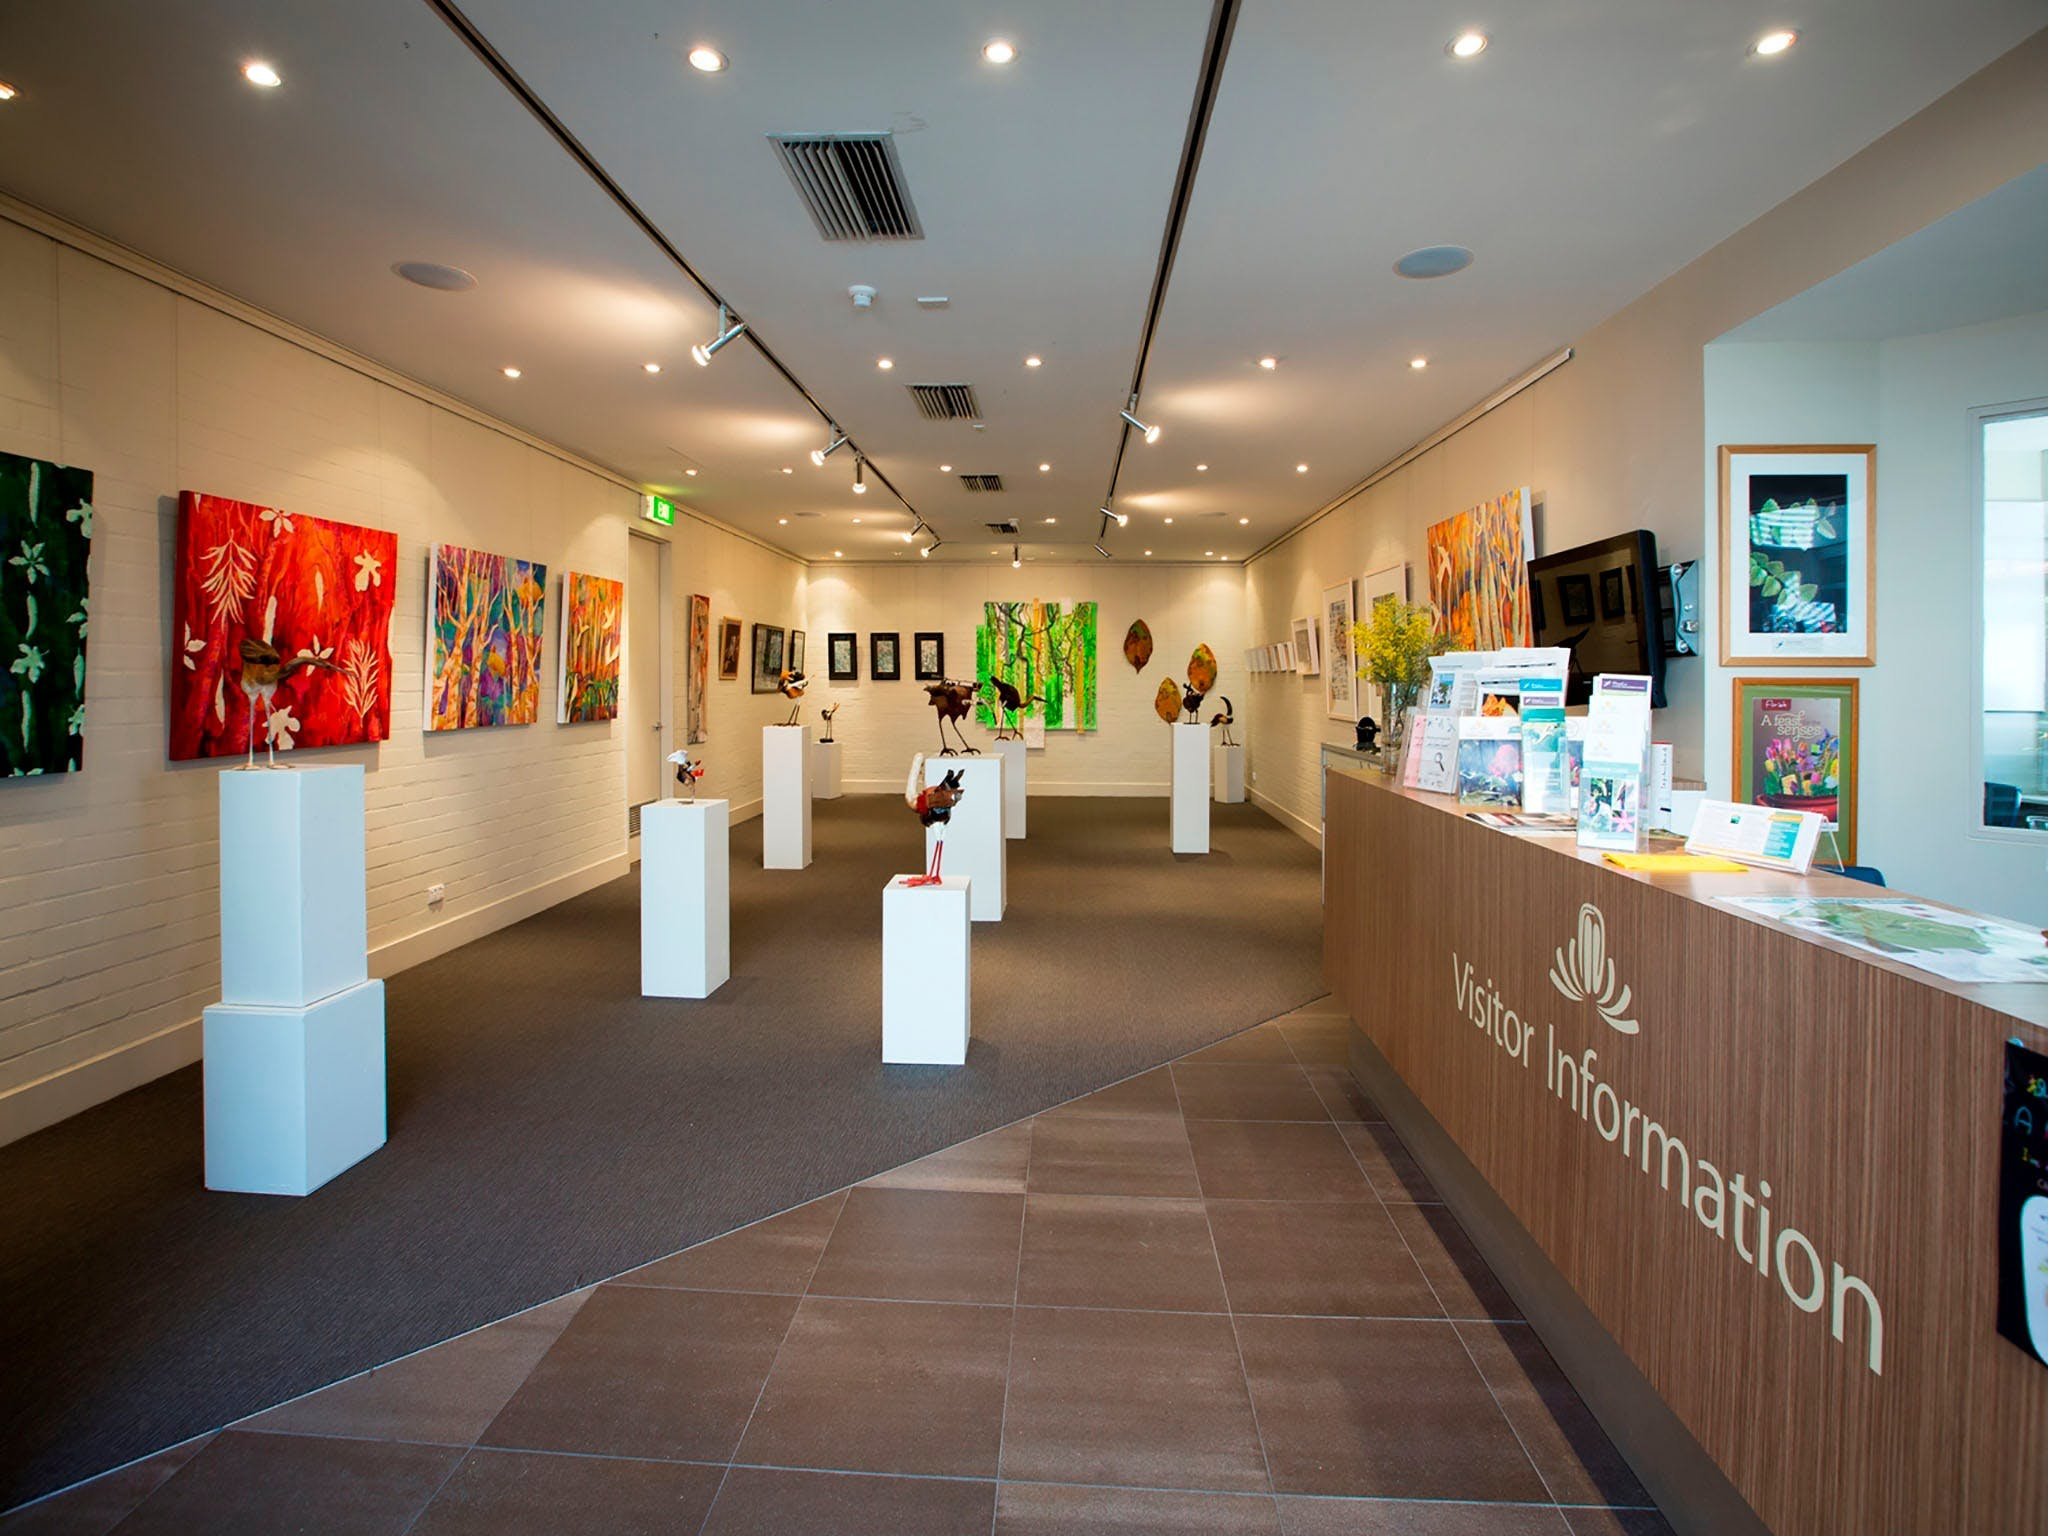 Australian National Botanic Gardens Visitor Centre Gallery - Accommodation Port Macquarie